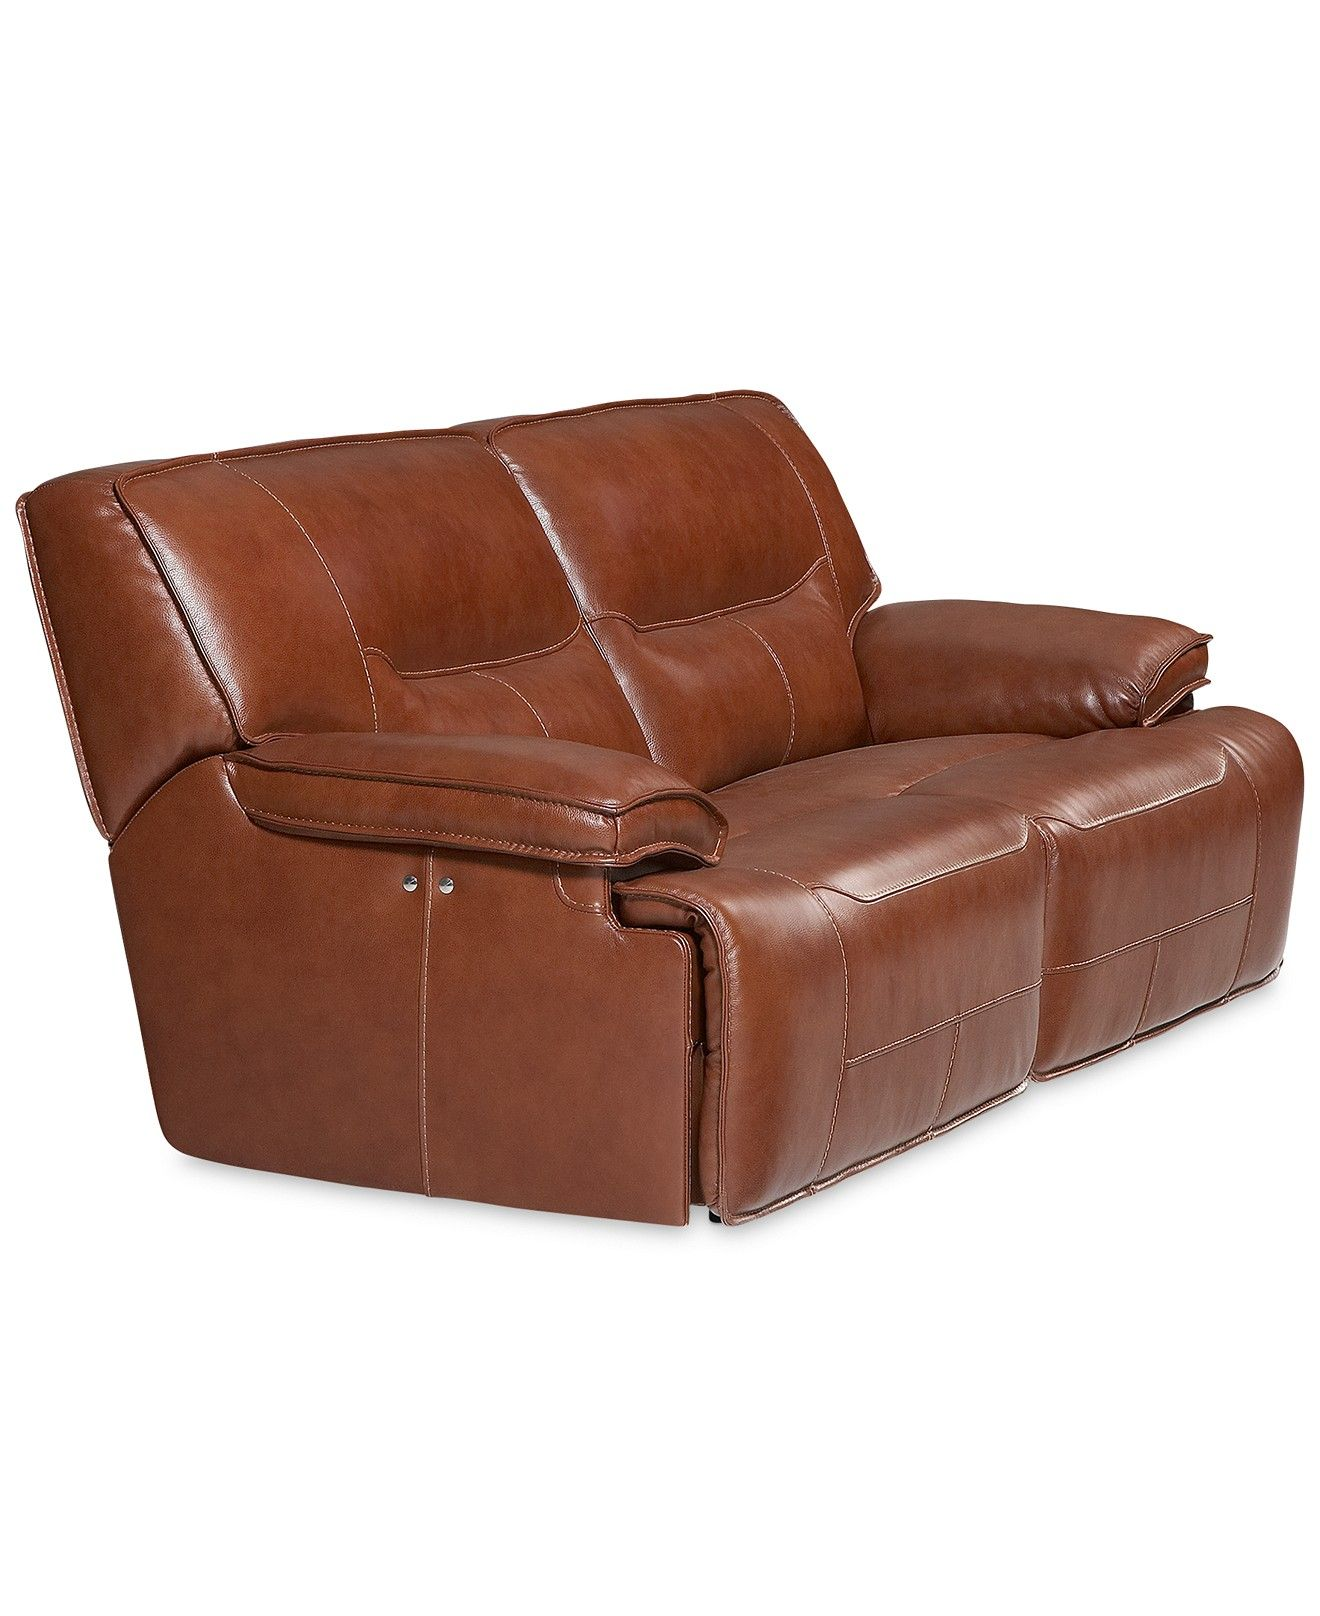 Beckett Leather 2 Piece Sectional Sofa with 2 Power Recliners